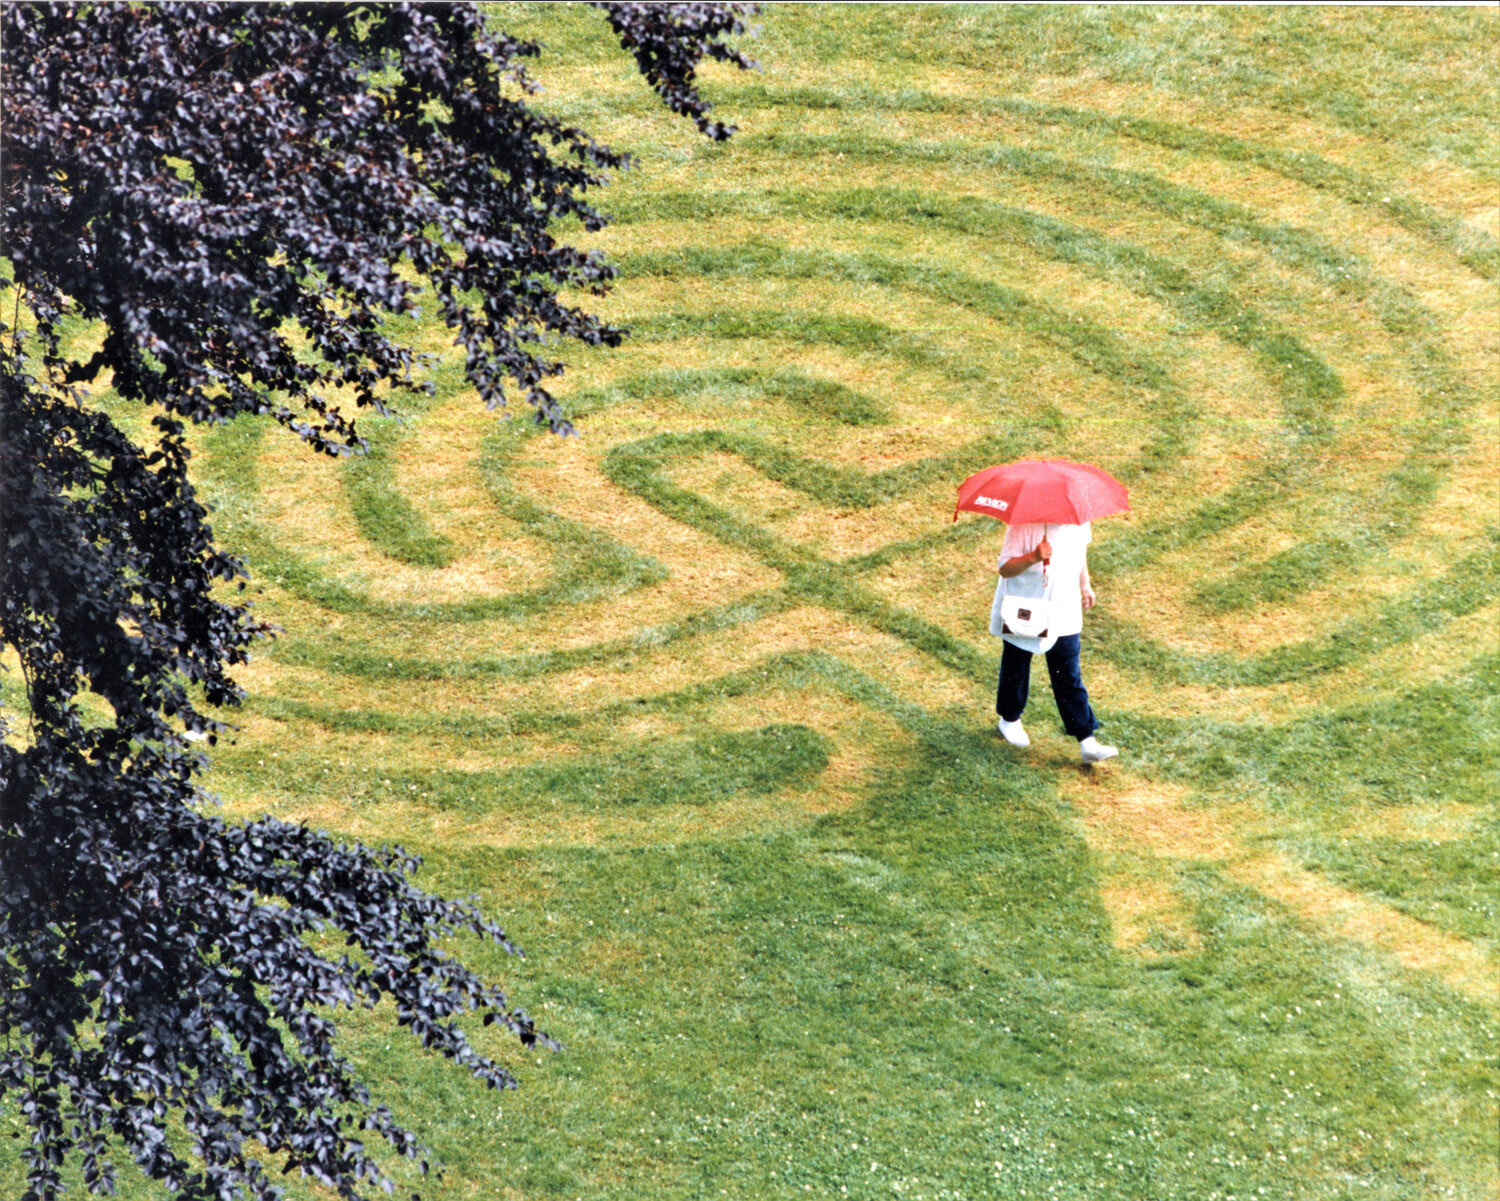 The labyrinth that Terry Loeppky and his father mowed onto the lawn of Irving Park, perhaps in 1997. Note the arrow at the entrance and the curving cross of conventional classical/Cretan labyrinths. (Bruce Stotesbury of the Times Colonist, probable photographer)